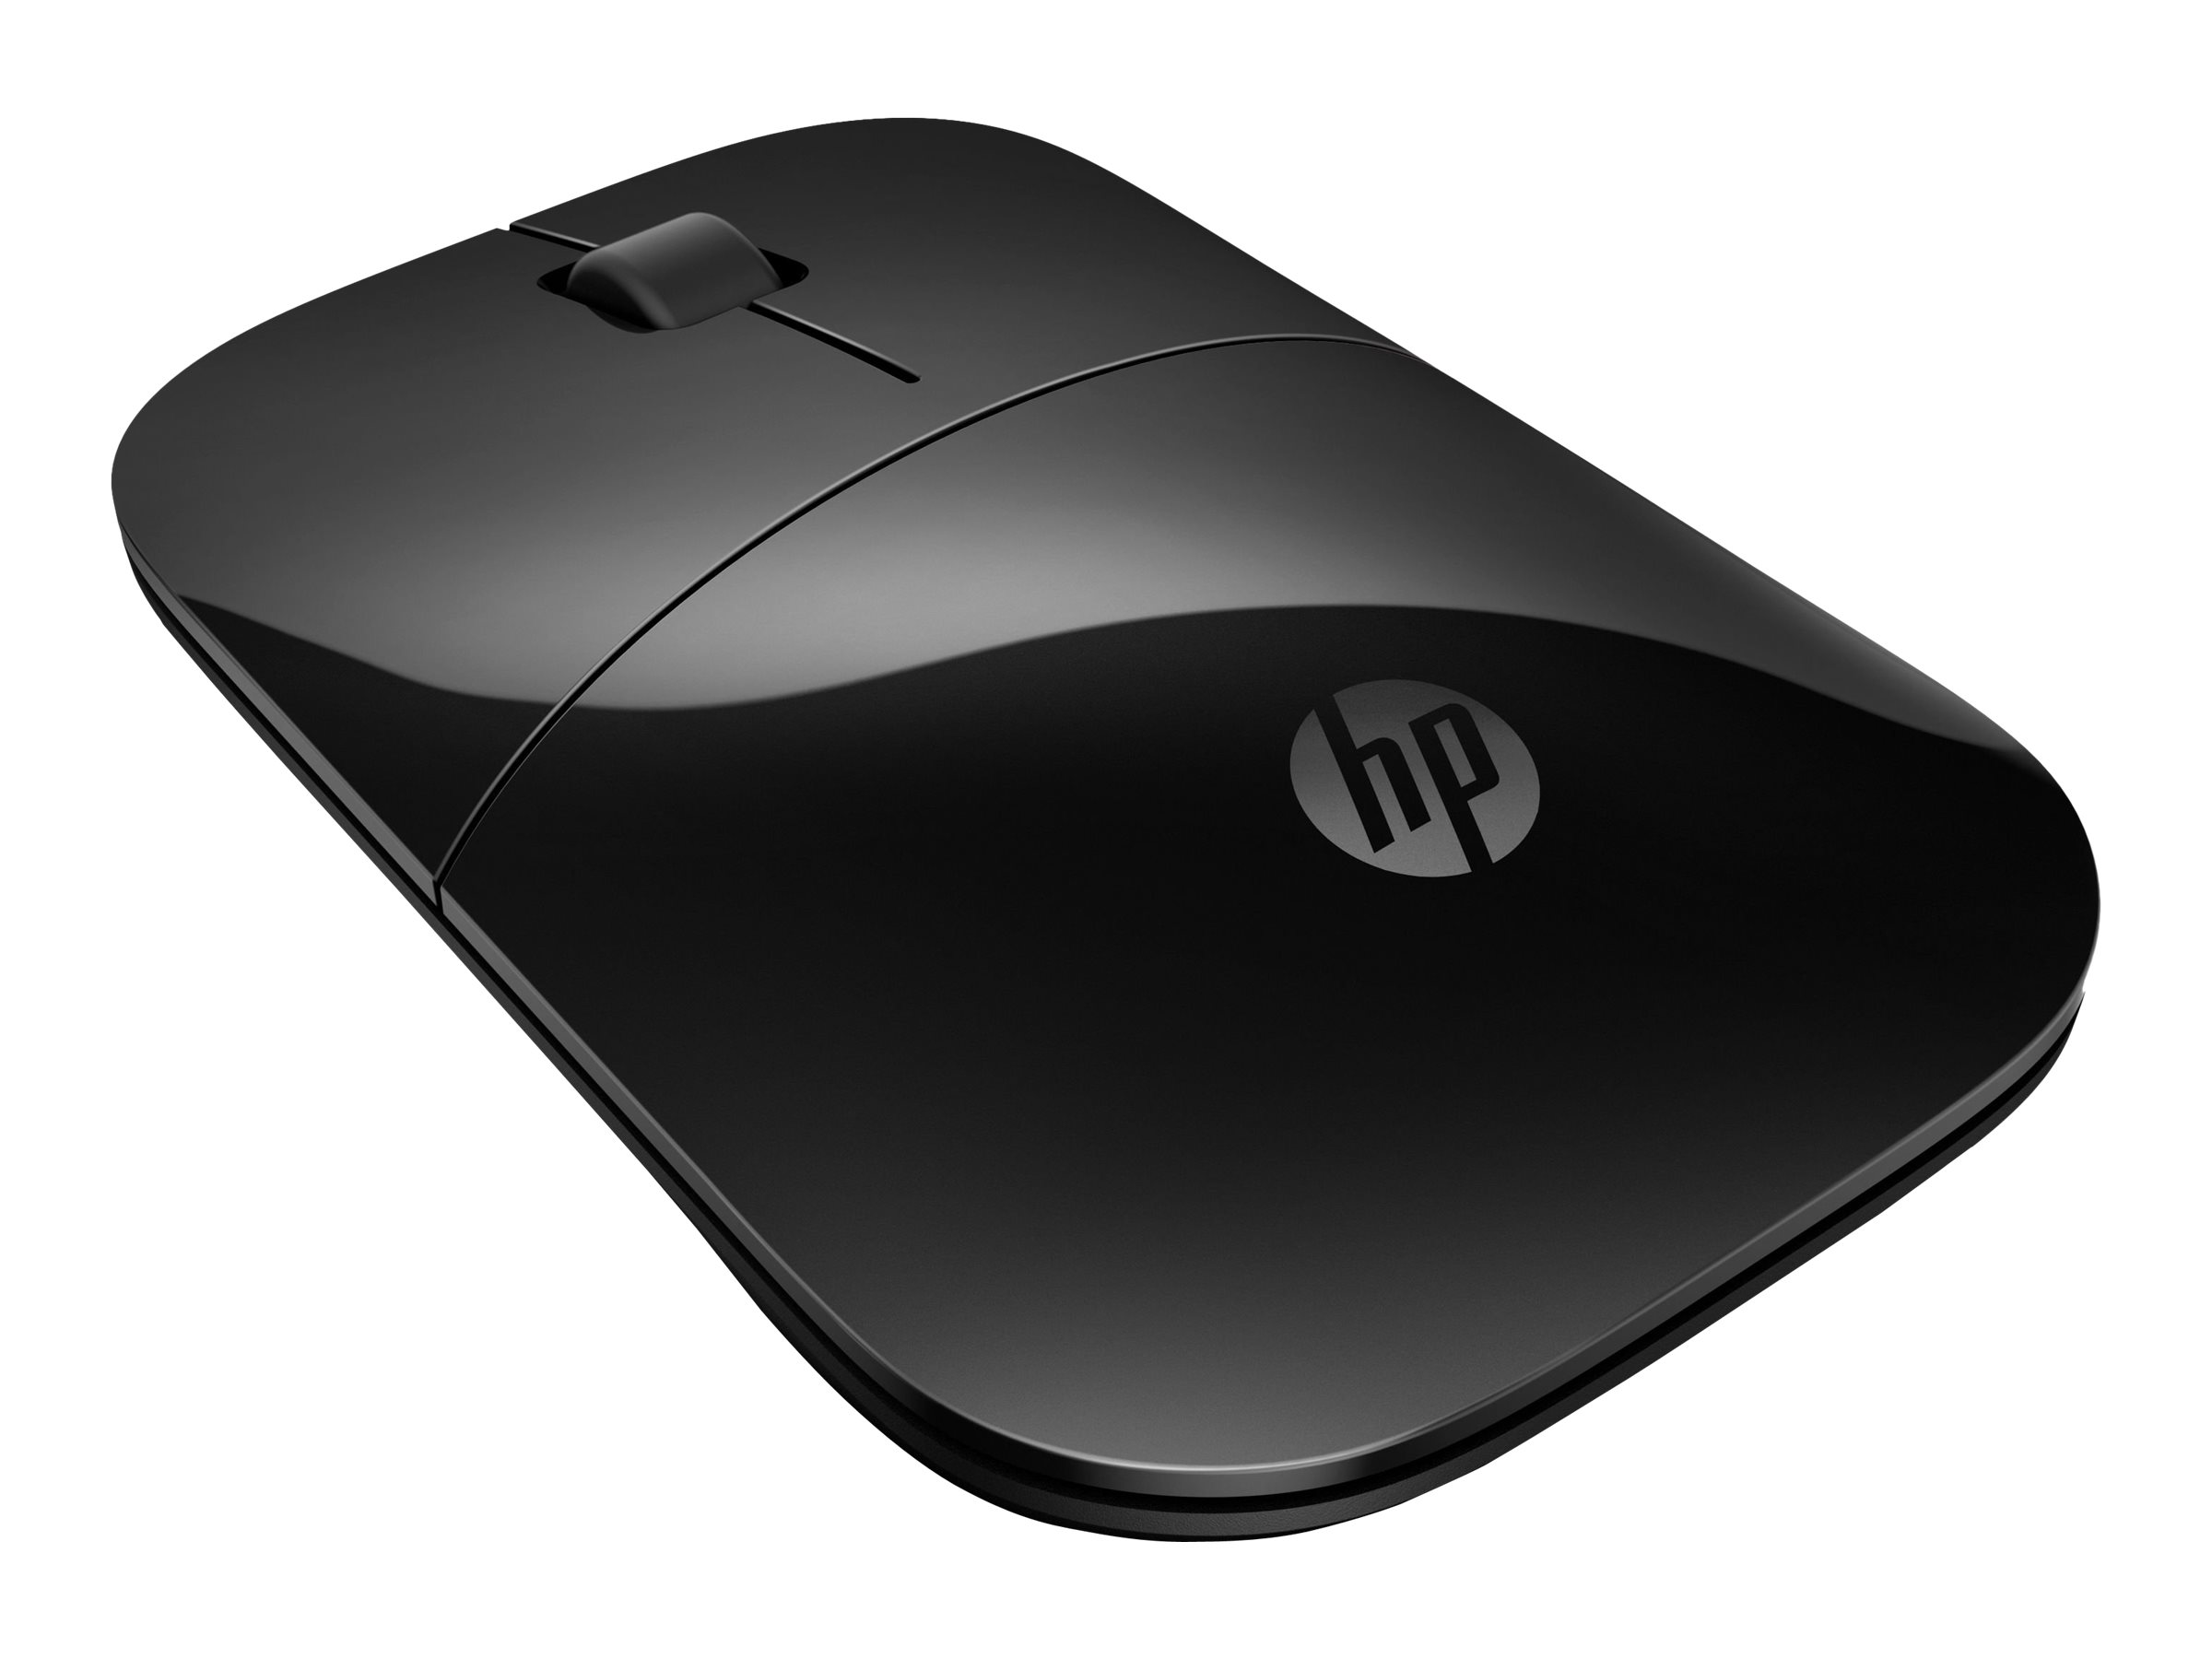 Image for Hp Z3700 - Mouse - 2.4 Ghz - Black from Circuit City